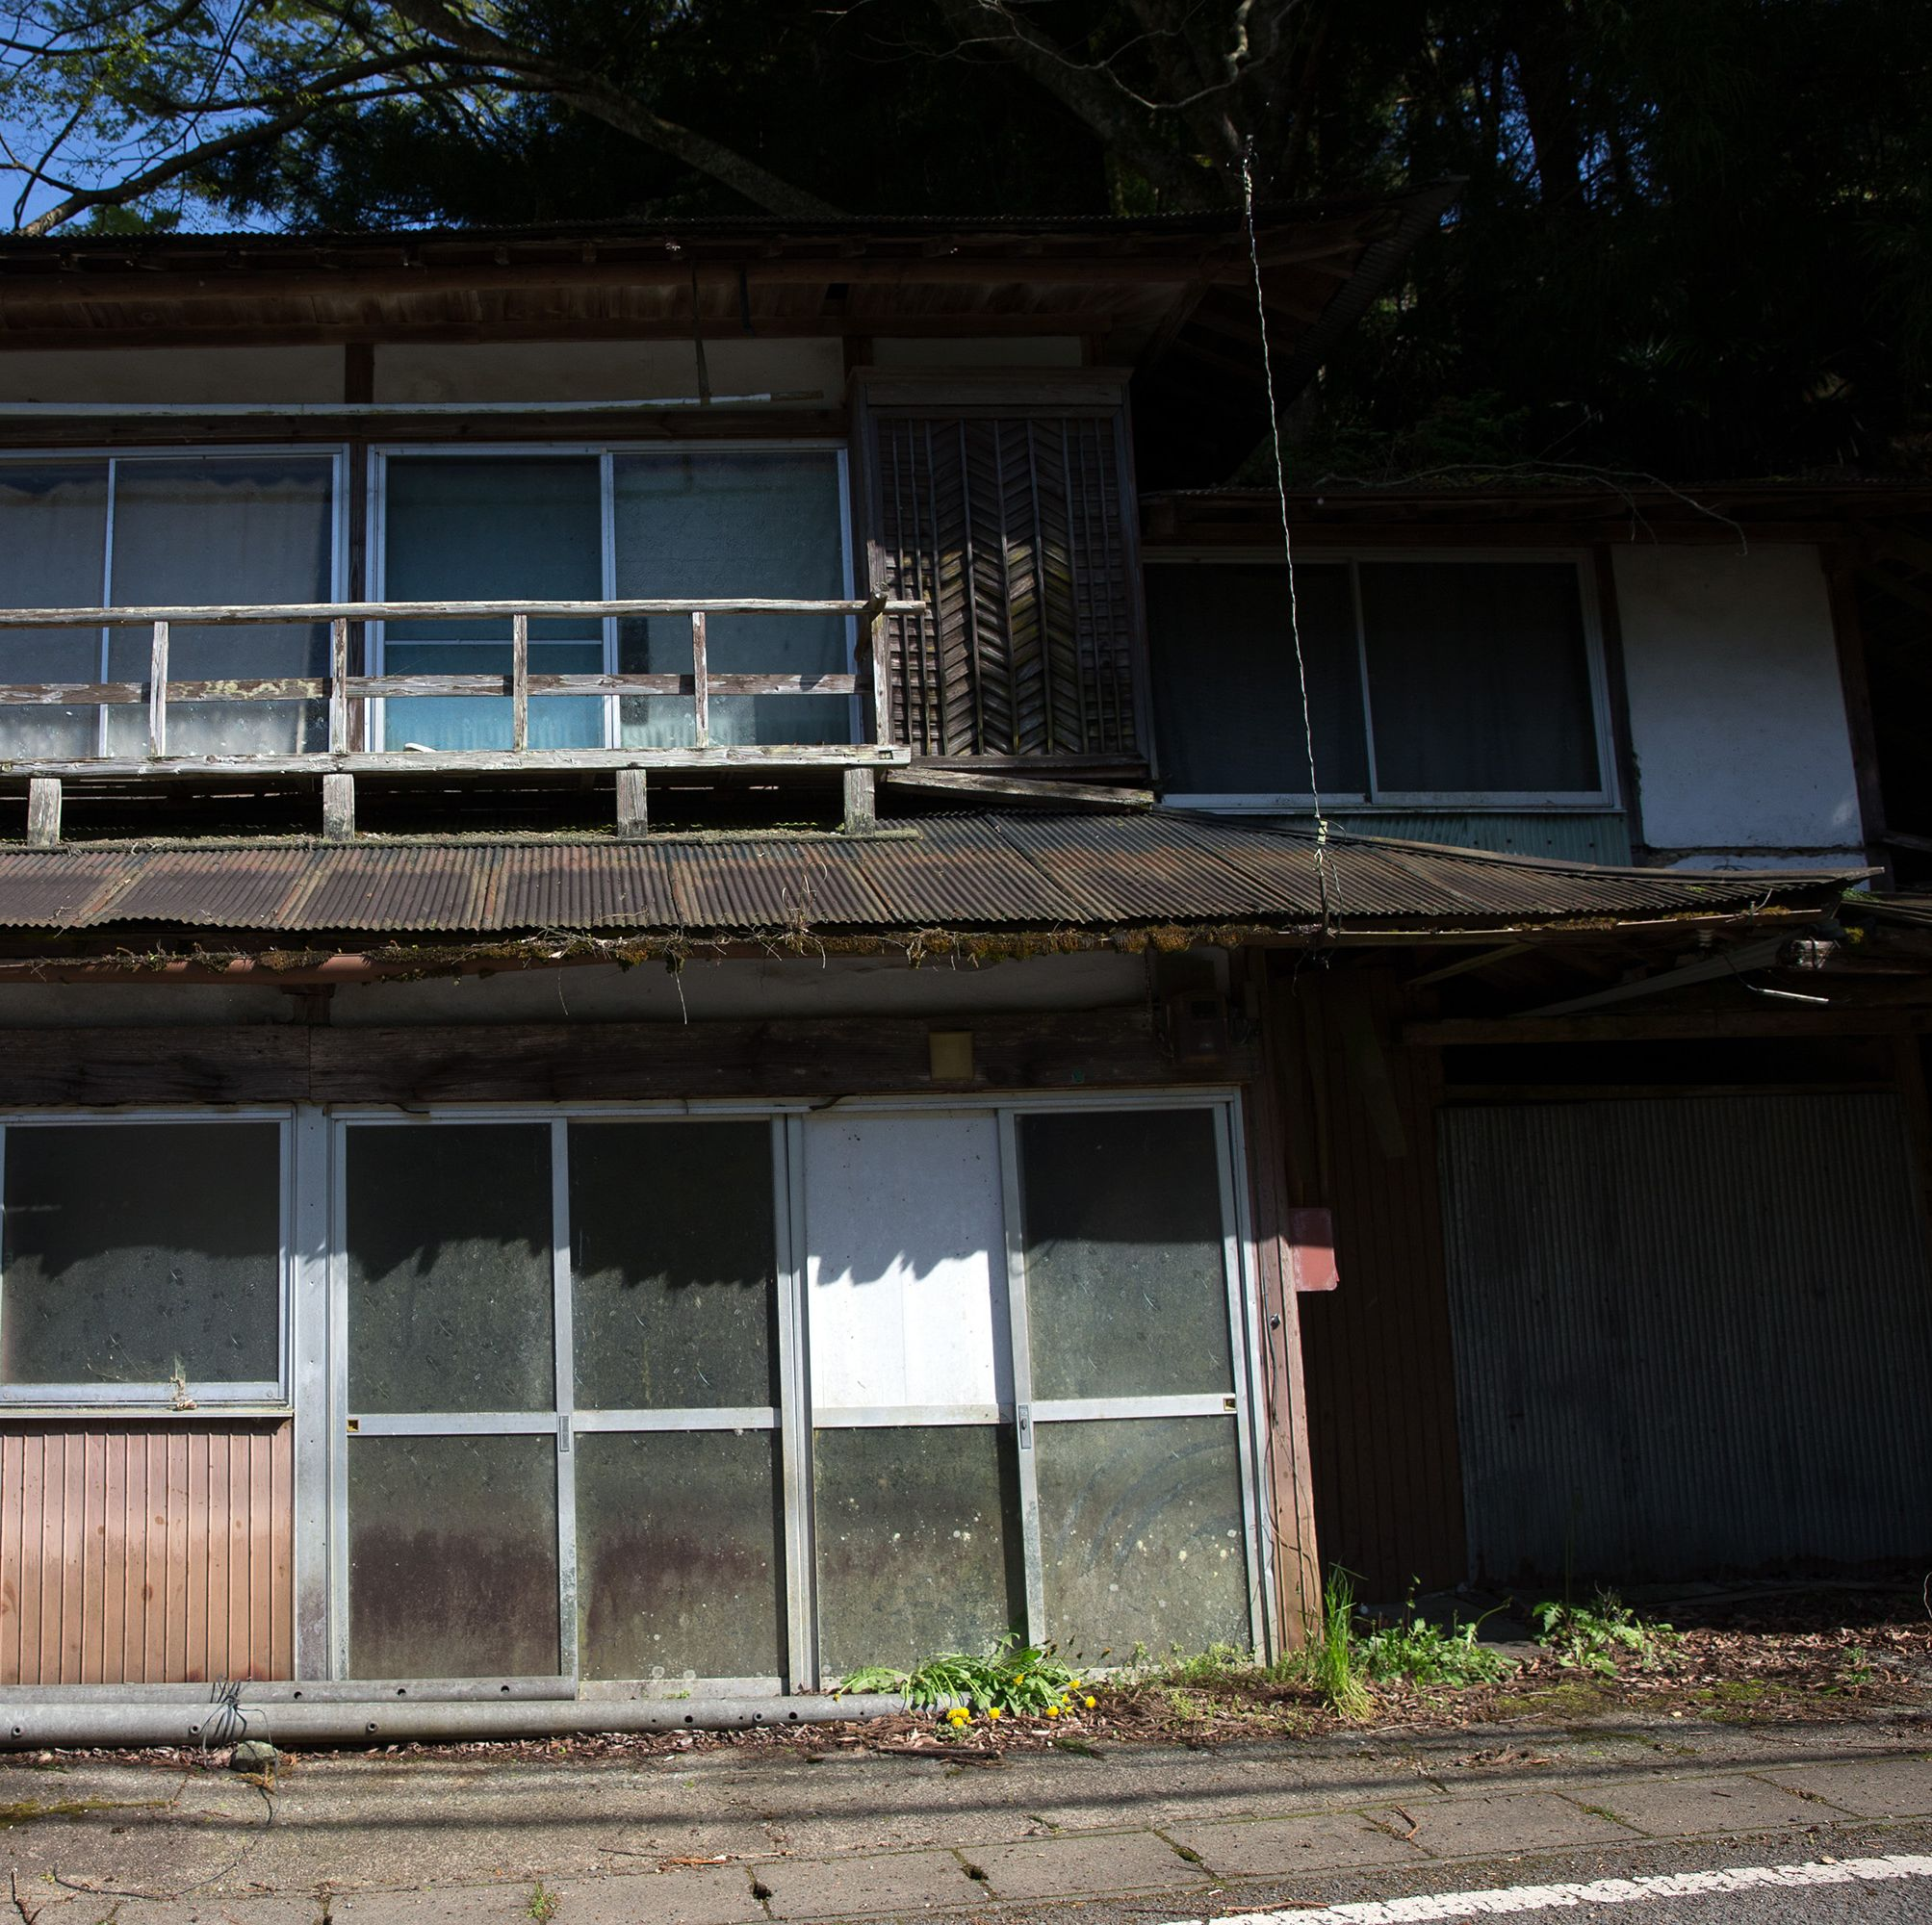 The Free Homes Being Given Away In Japan Actually Have Some Scary History